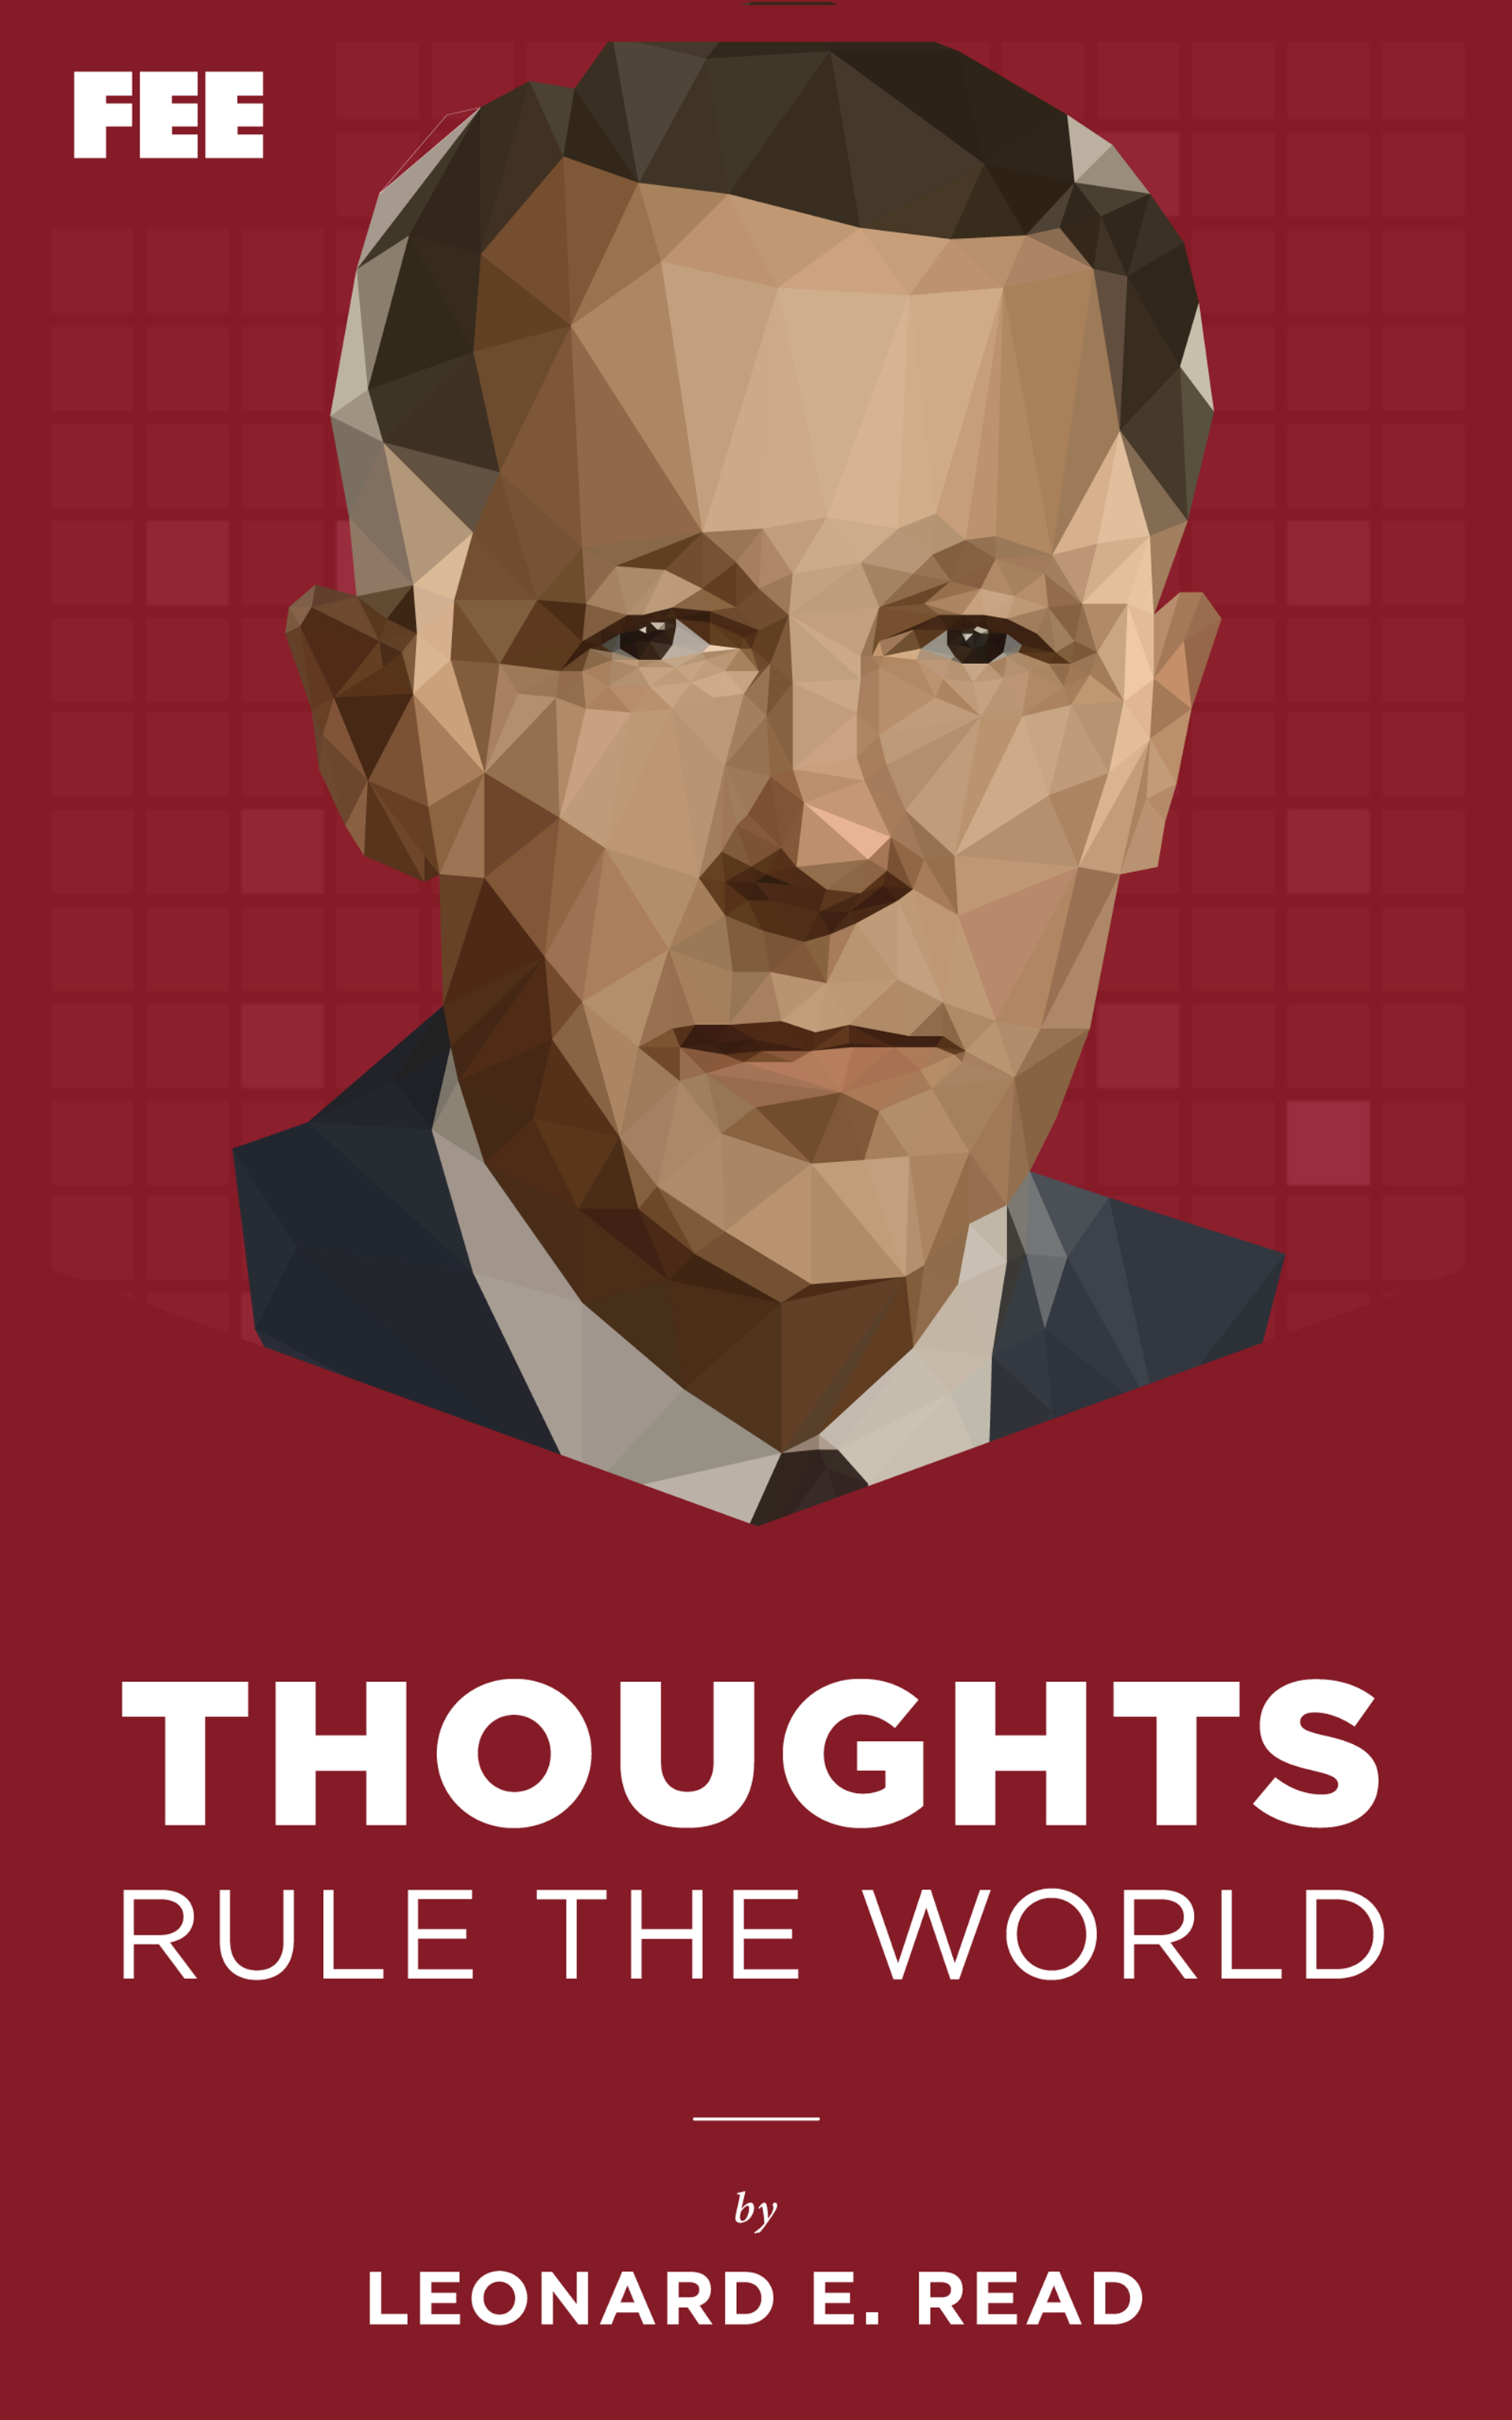 Thoughts Rule the World - Foundation for Economic Education